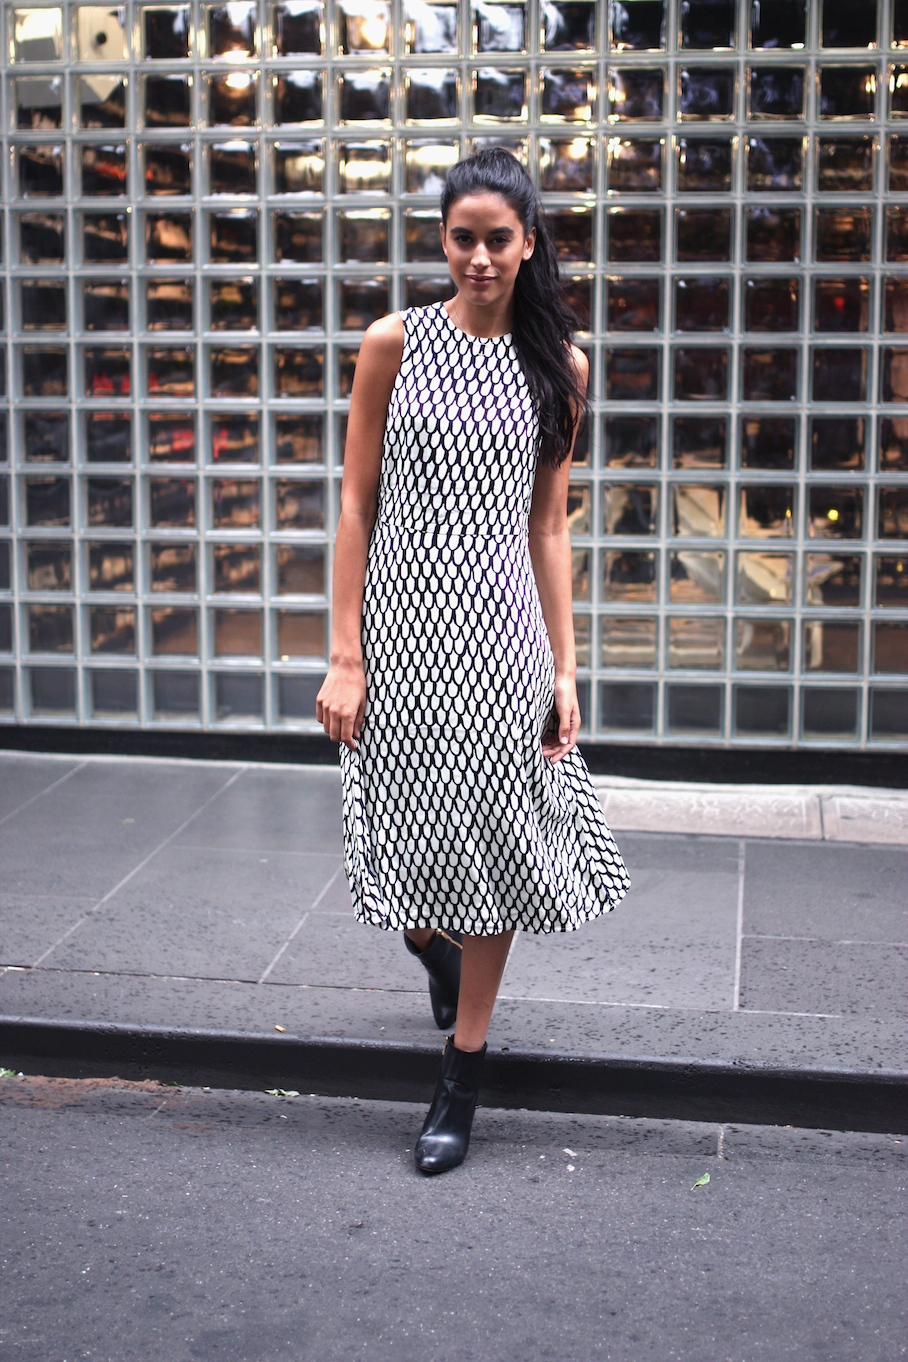 """Vic: Bhavna Suri, (retail), Melbourne. """"Confident."""" Photo: <a href=""""http://www.marythamphotography.weebly.com/"""" target=""""_blank"""">Mary Tham </a>"""